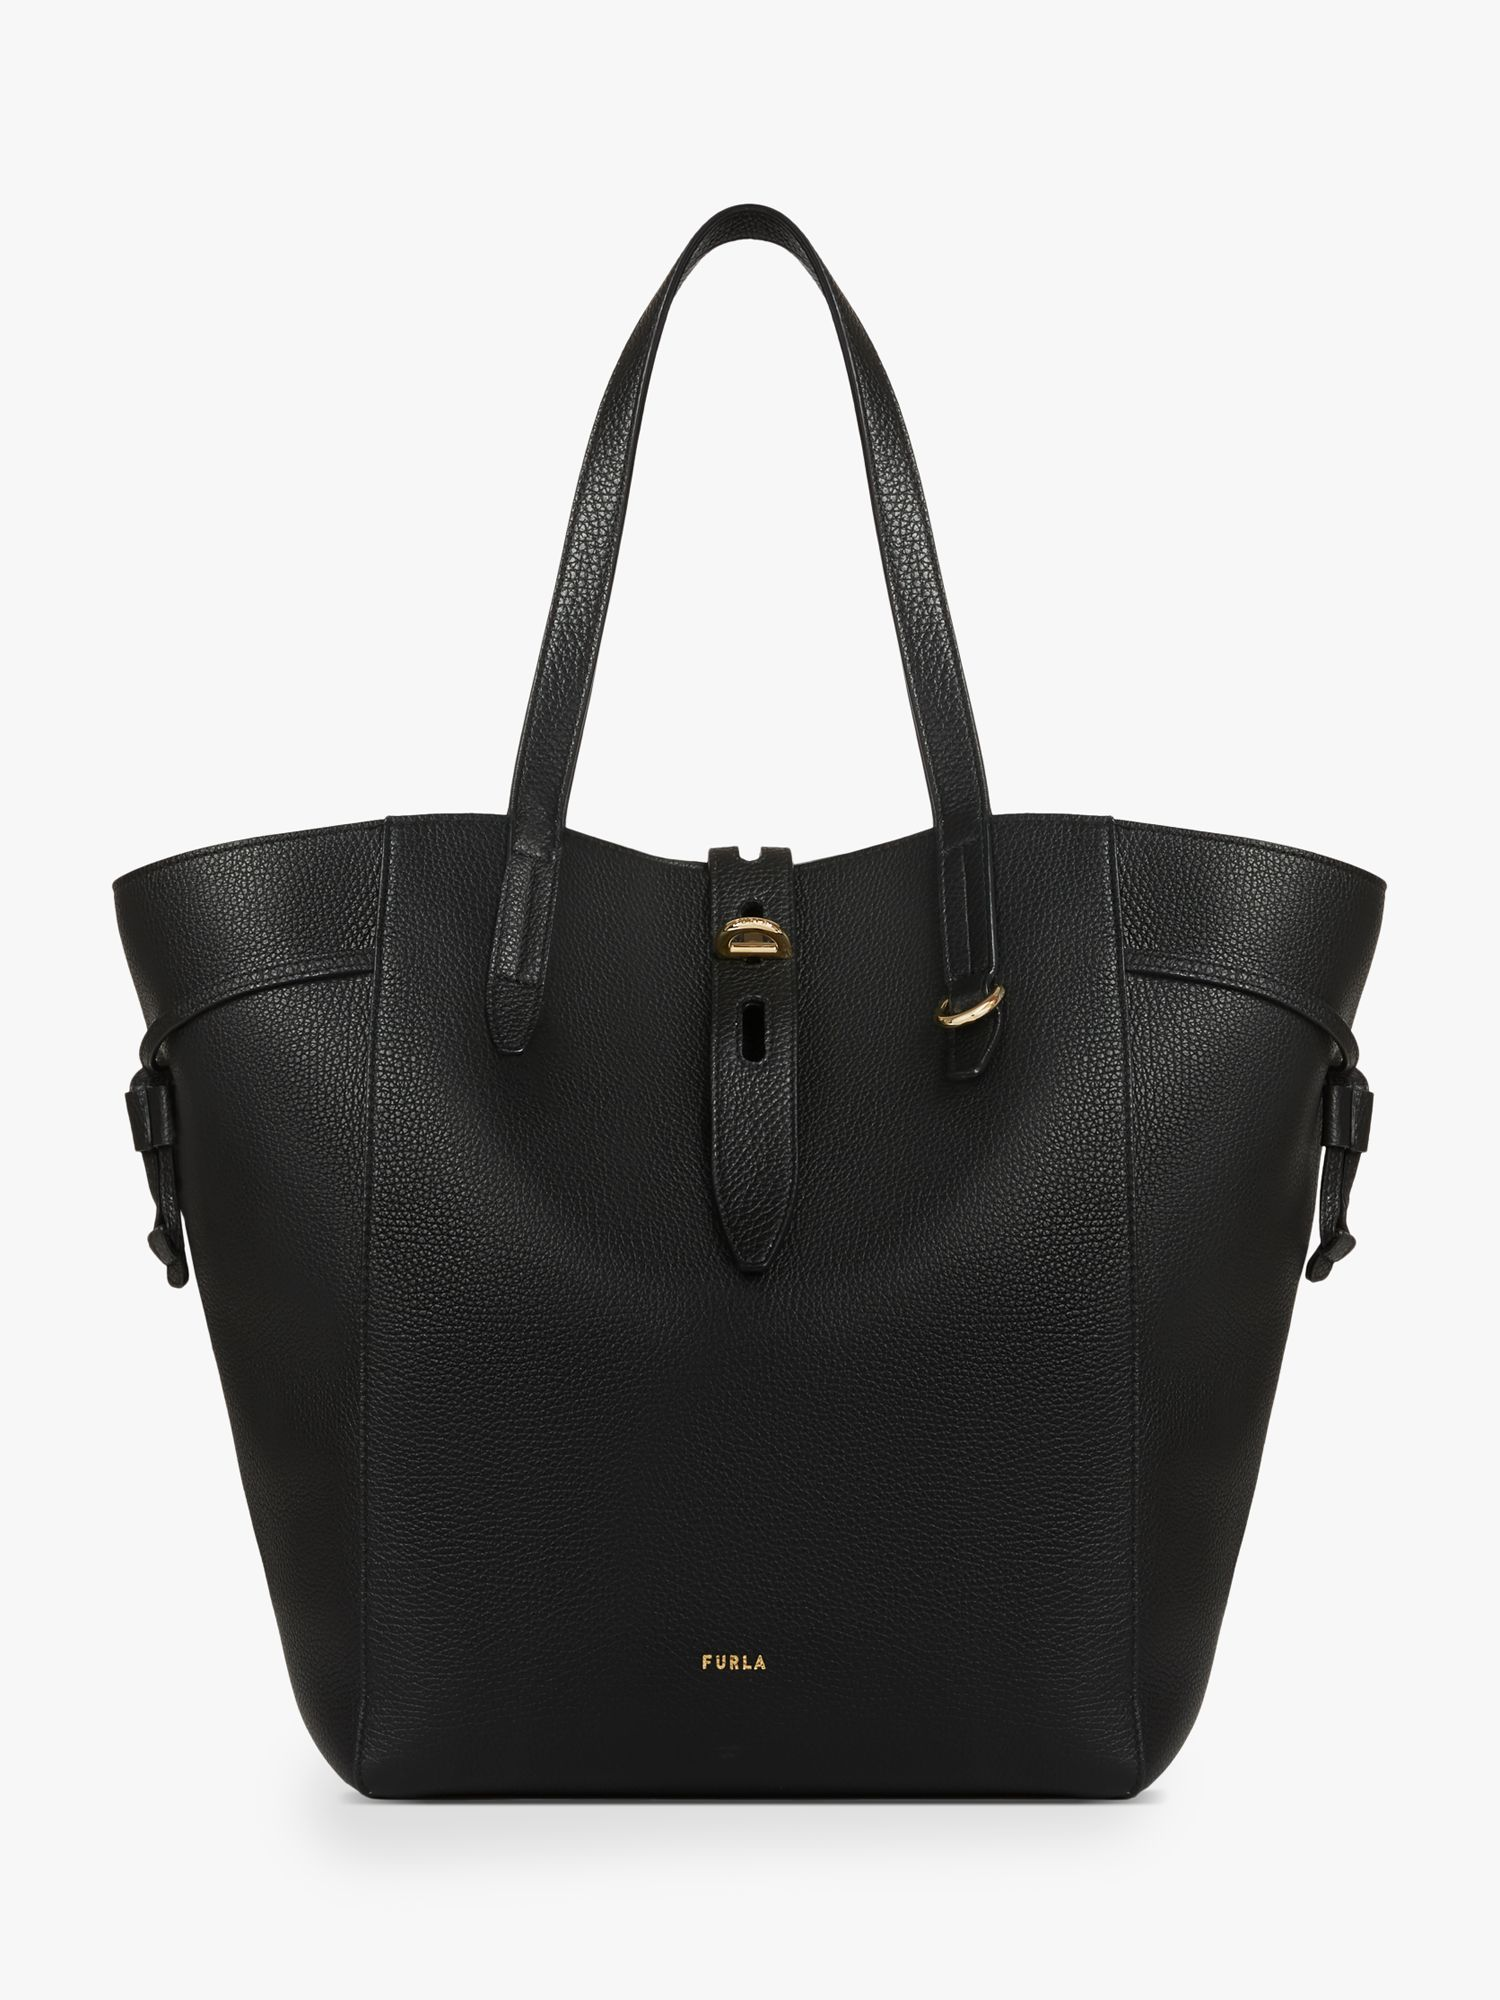 Furla Furla Net Large Leather Tote Bag, Nero